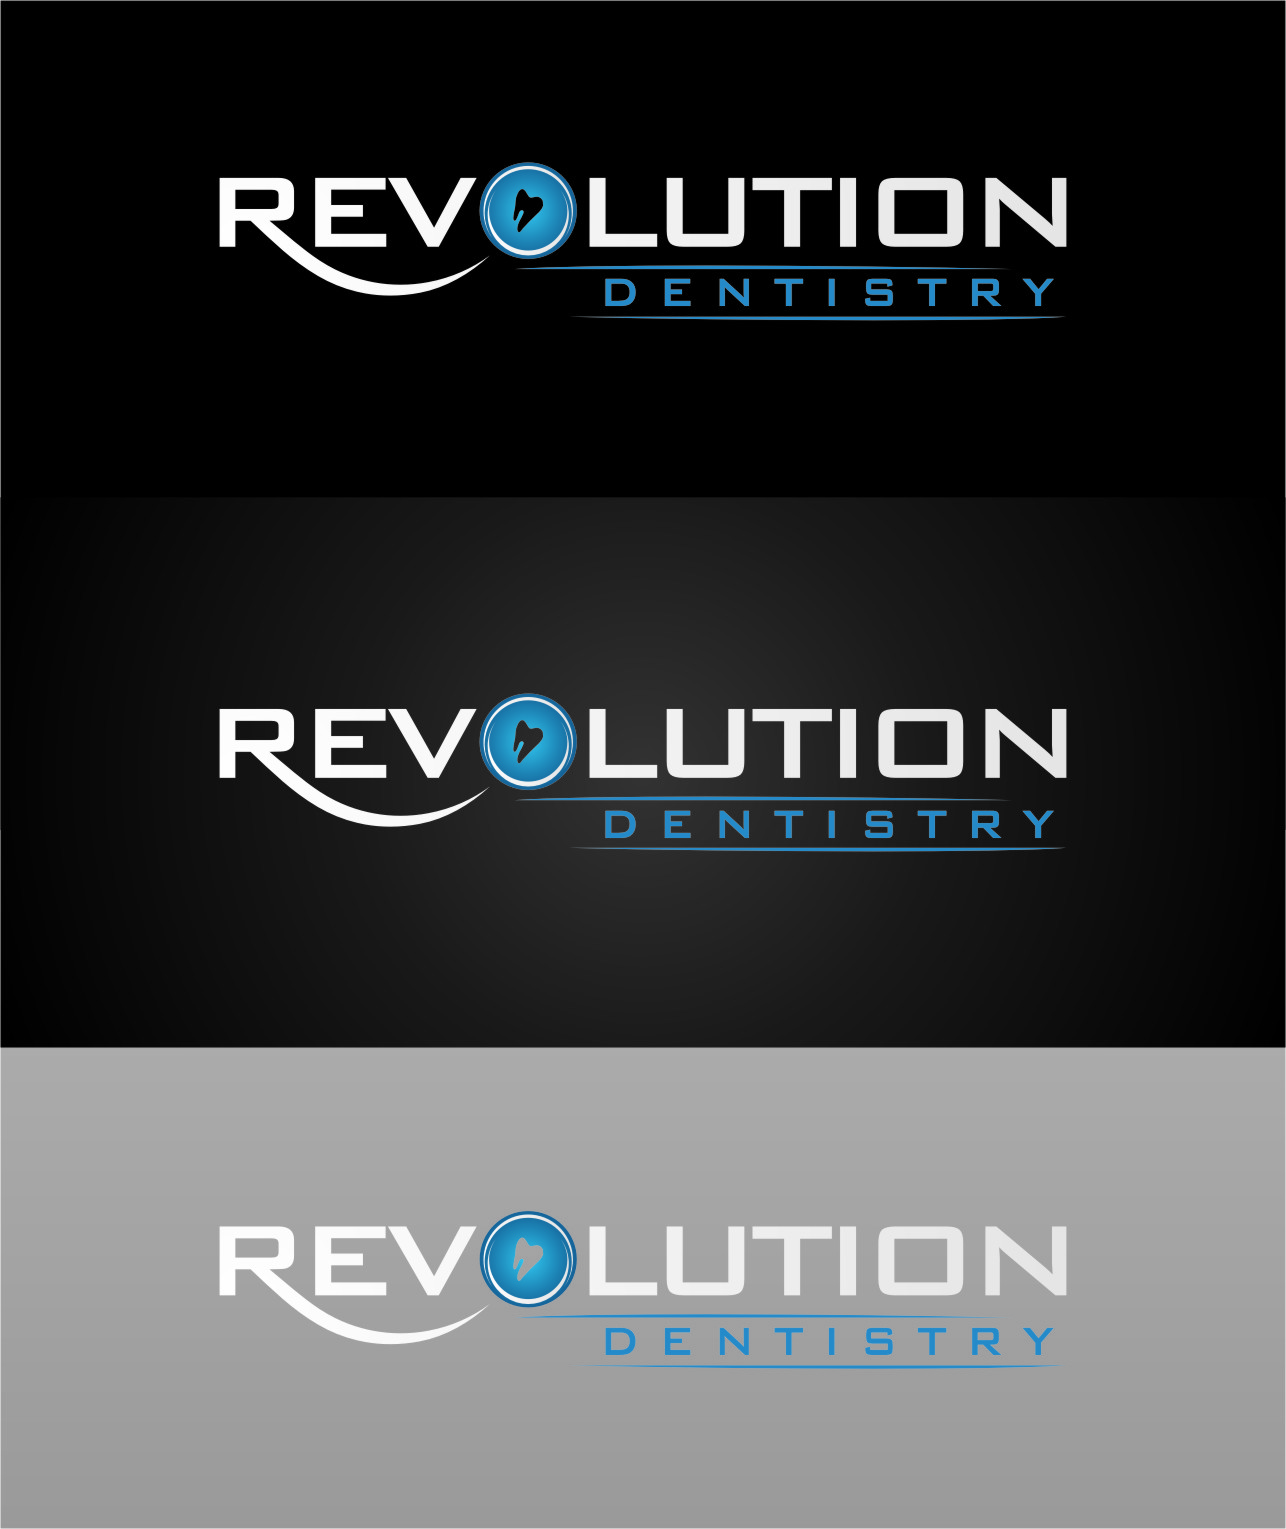 Logo Design by RasYa Muhammad Athaya - Entry No. 104 in the Logo Design Contest Artistic Logo Design for Revolution Dentistry.